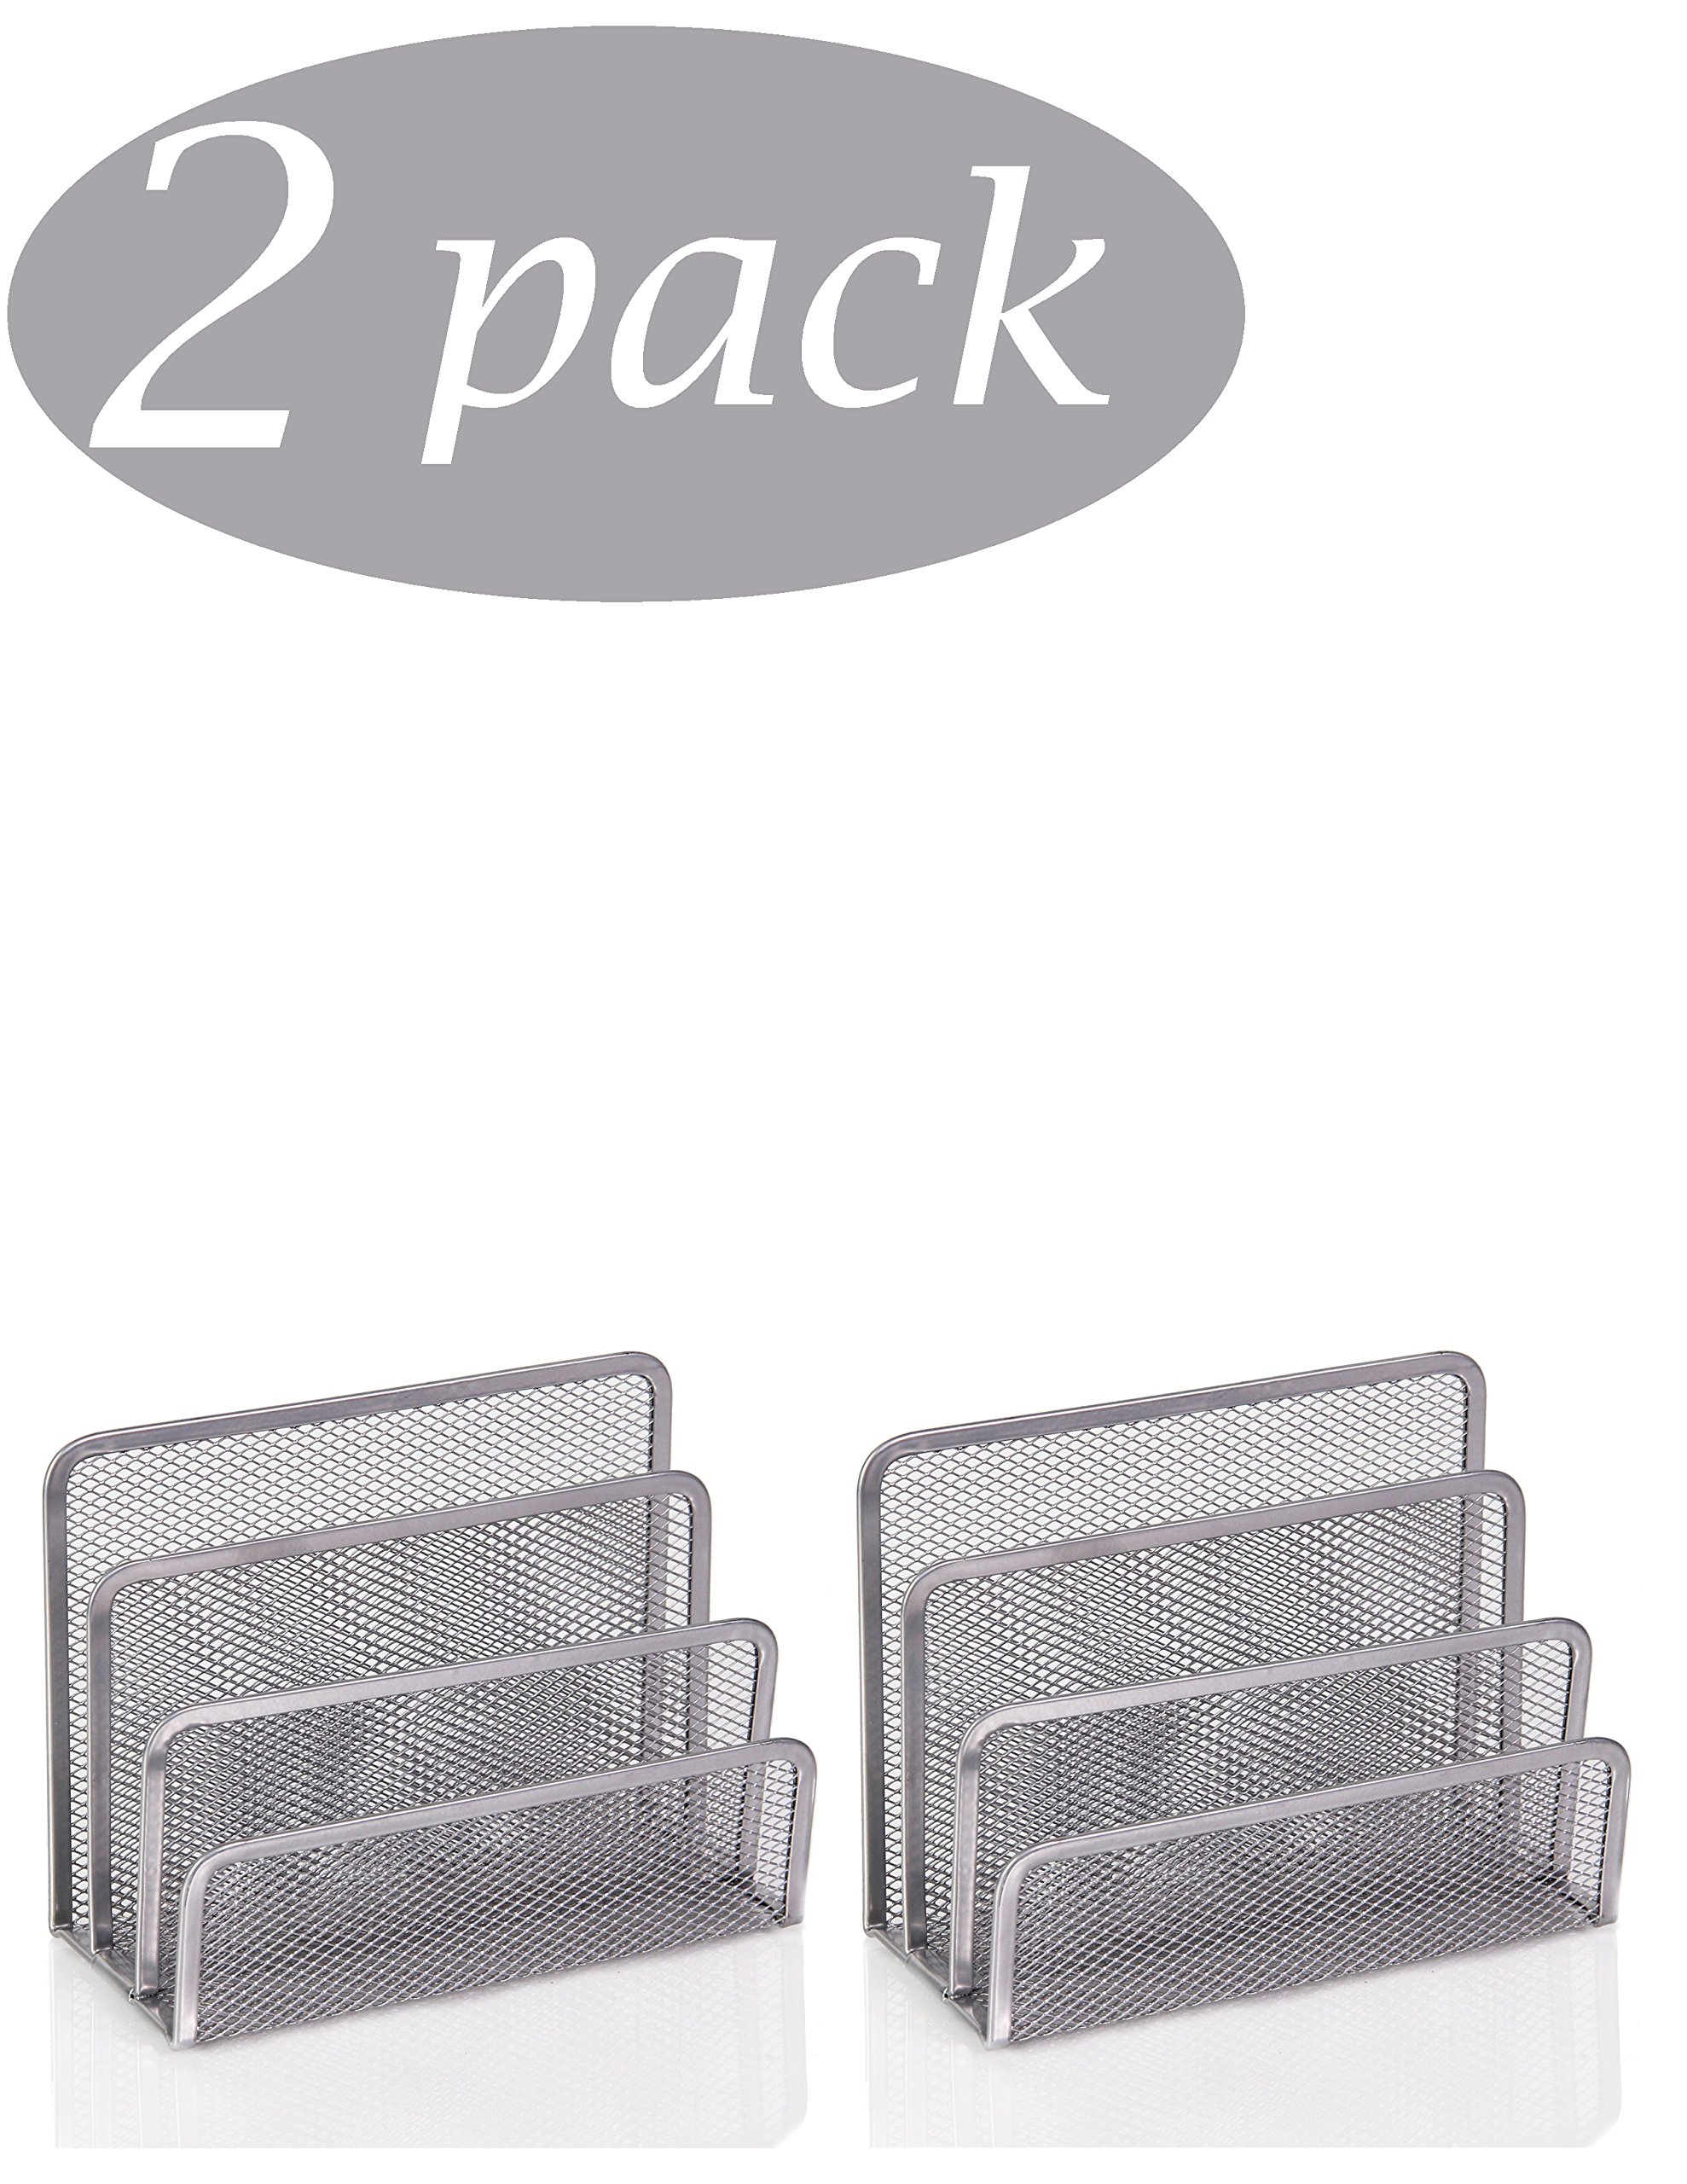 Ybm Home 3 Slot Mesh Letters and Documents Sorter Holder 2372-2 (2, Silver)